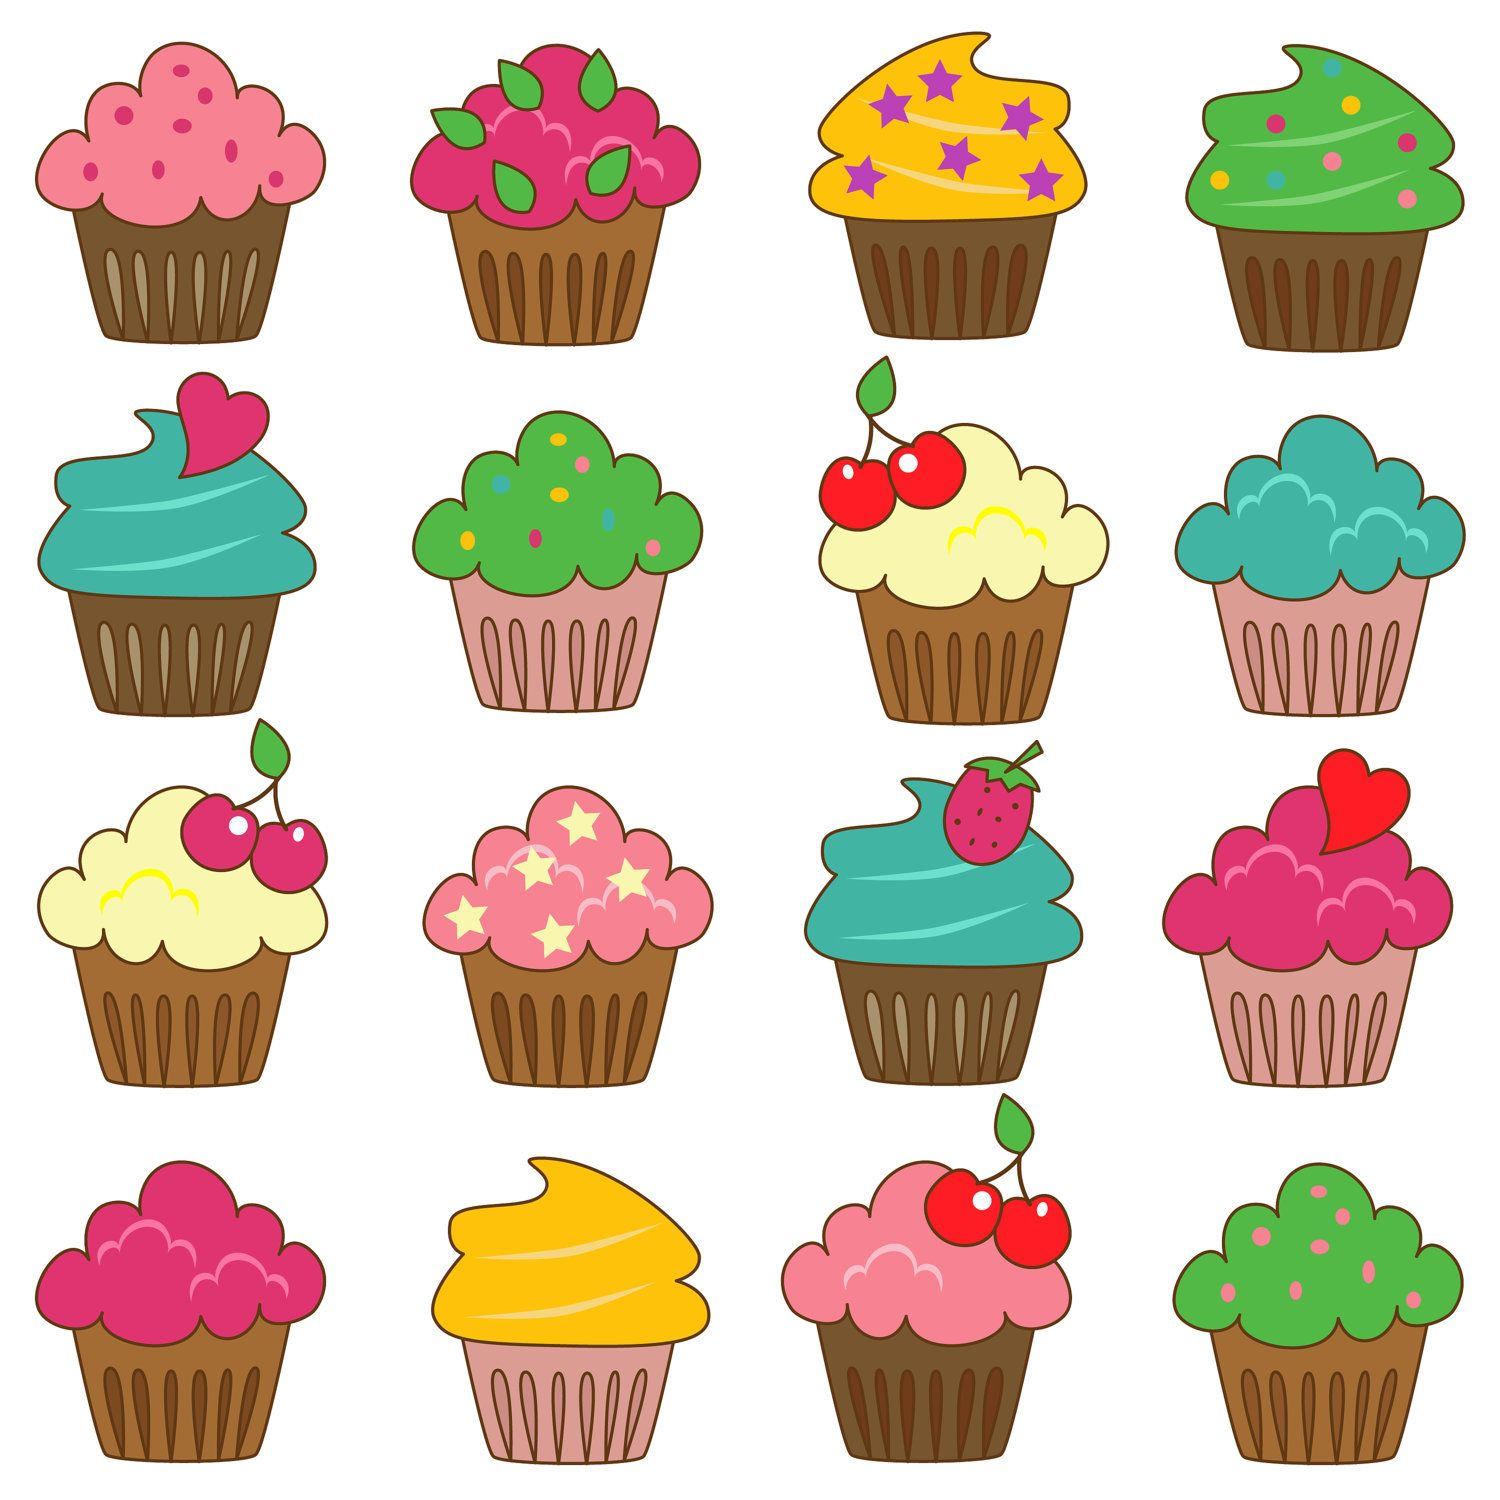 Muffins clipart turquoise. Free whimsical graphics for